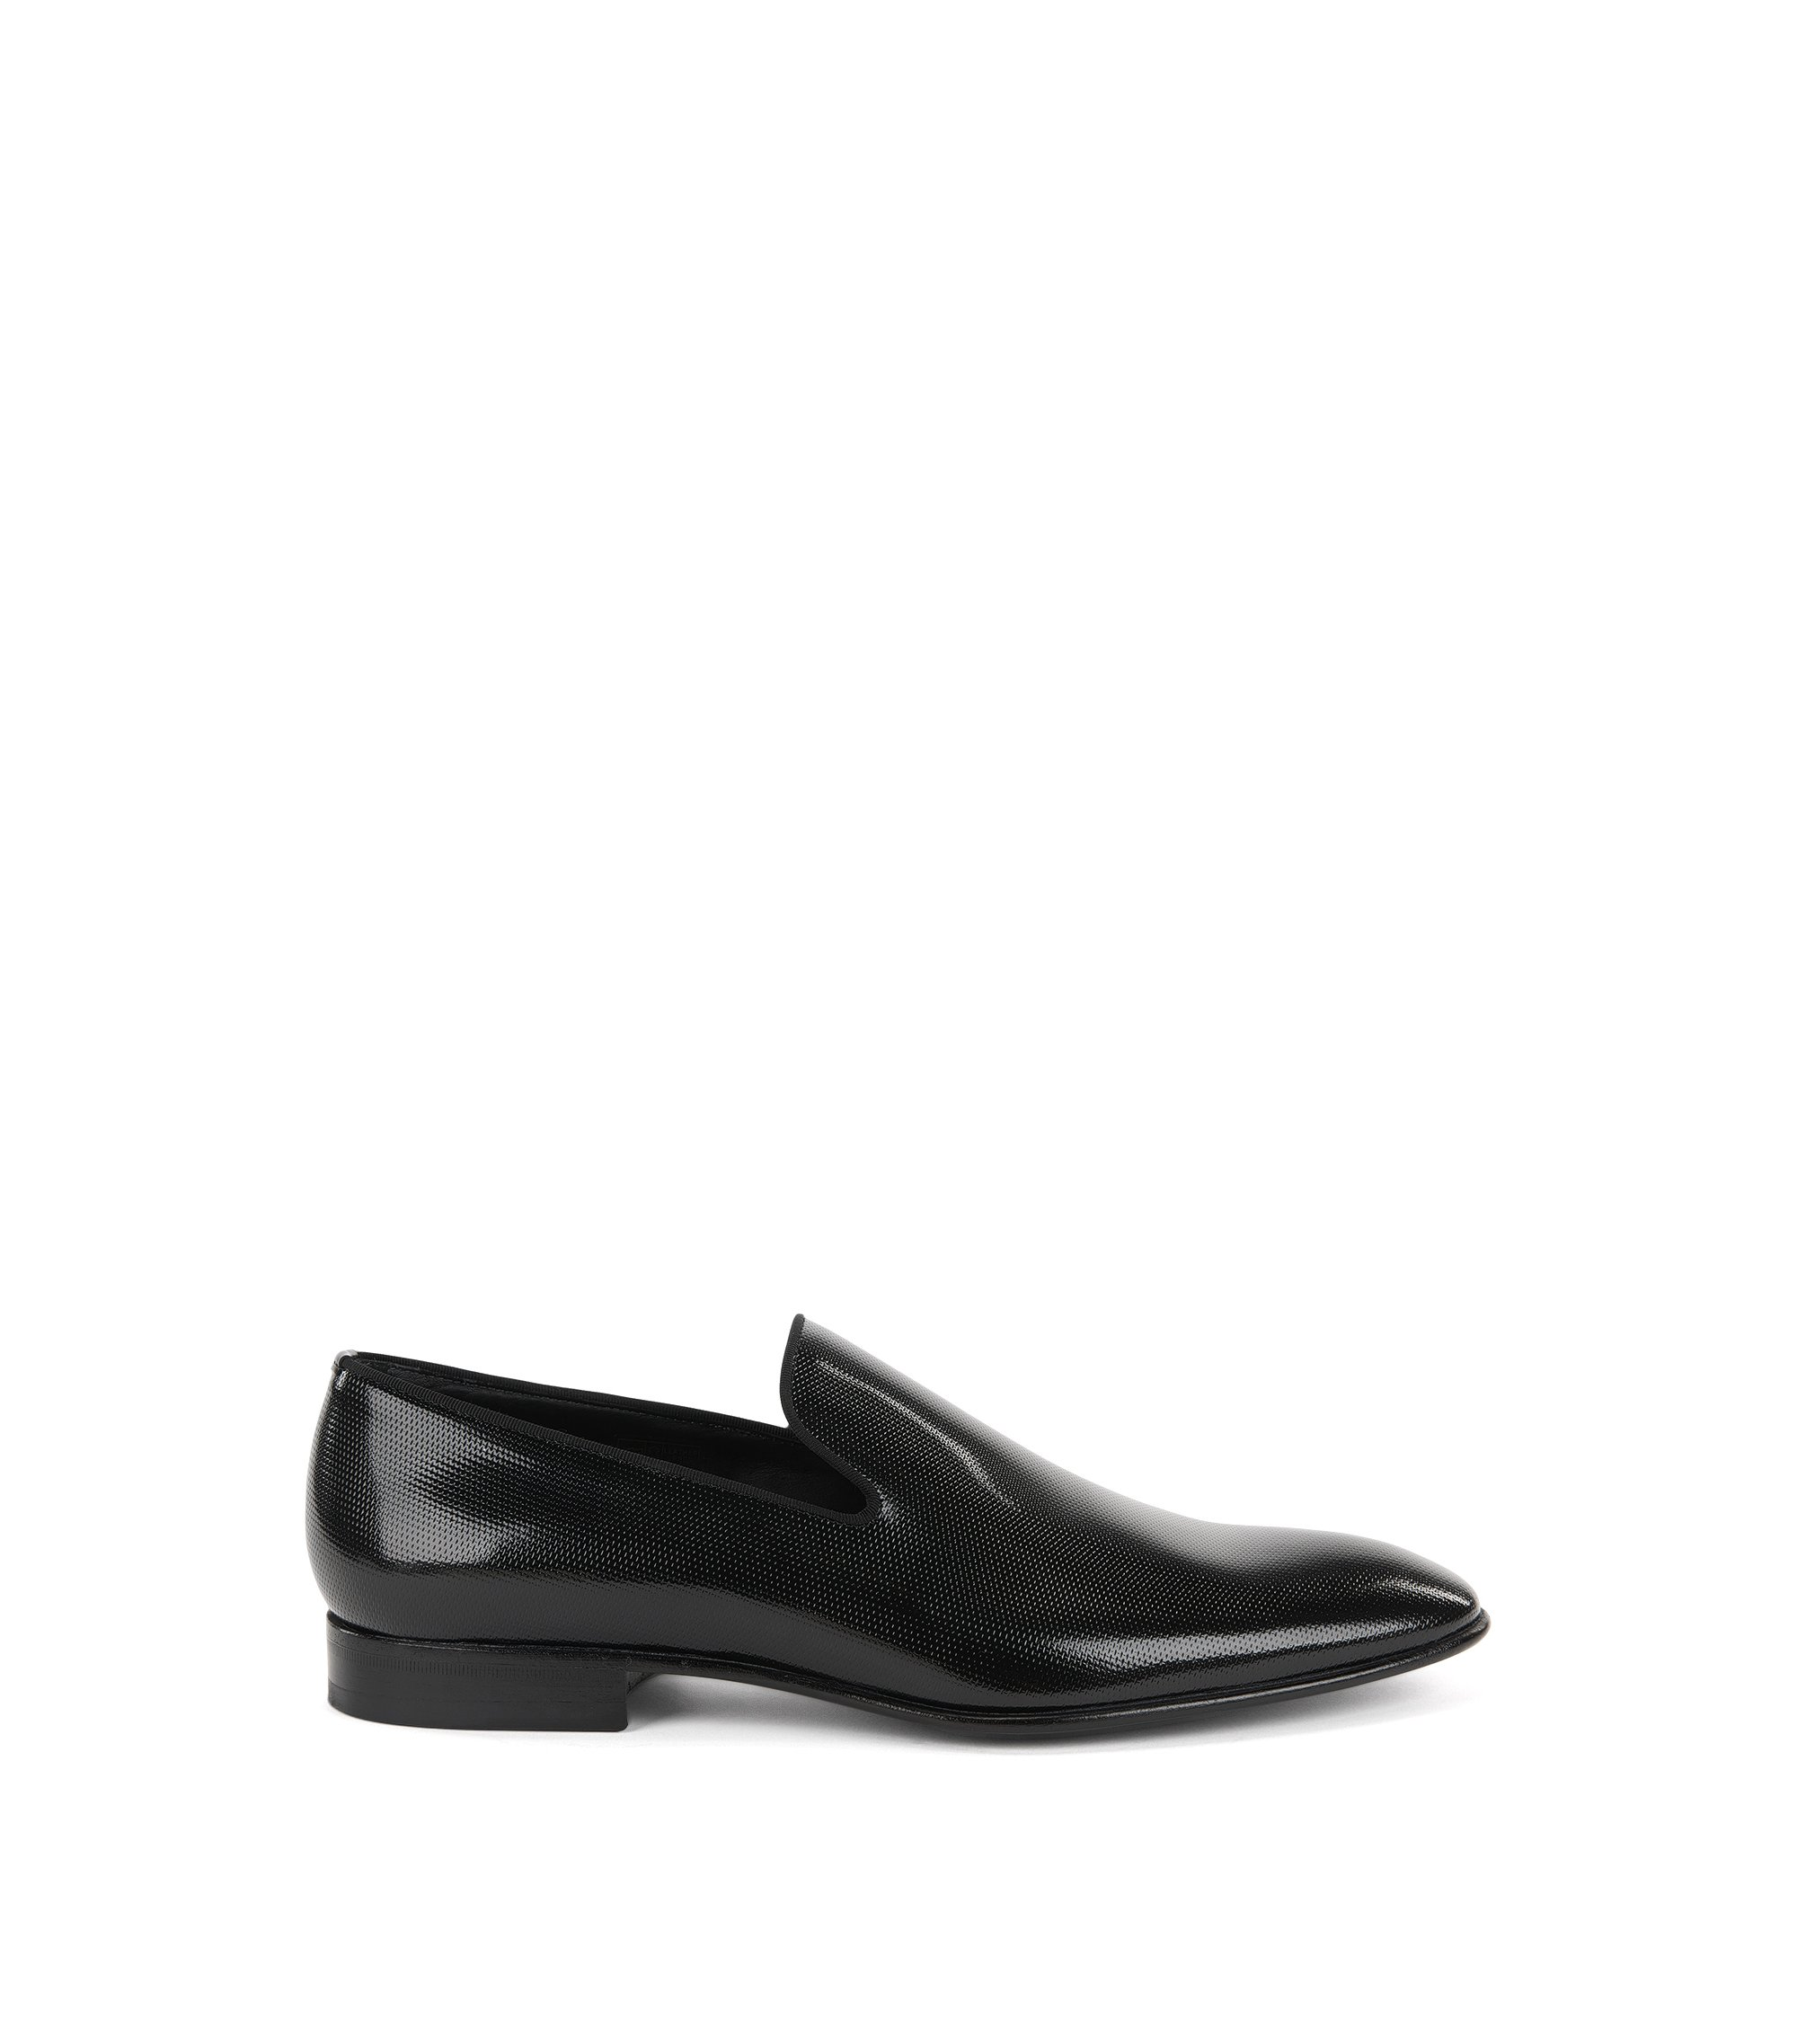 Slip-on loafers in printed patent leather, Black